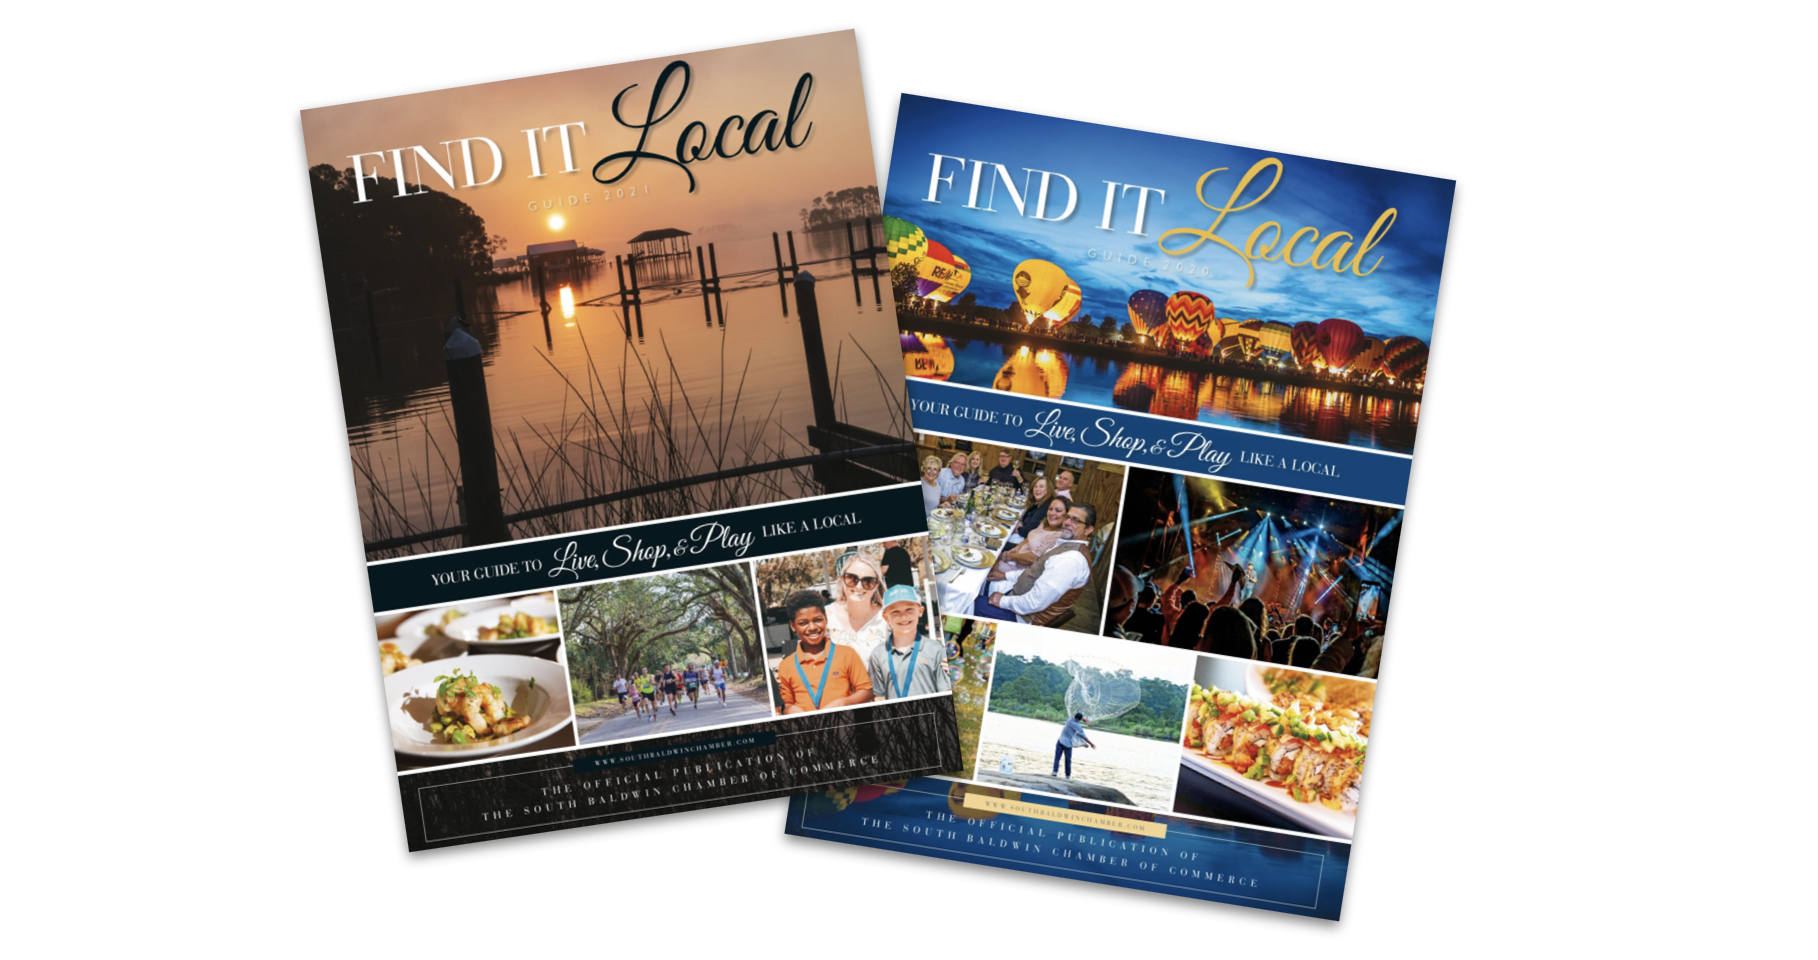 Find It Local Guide